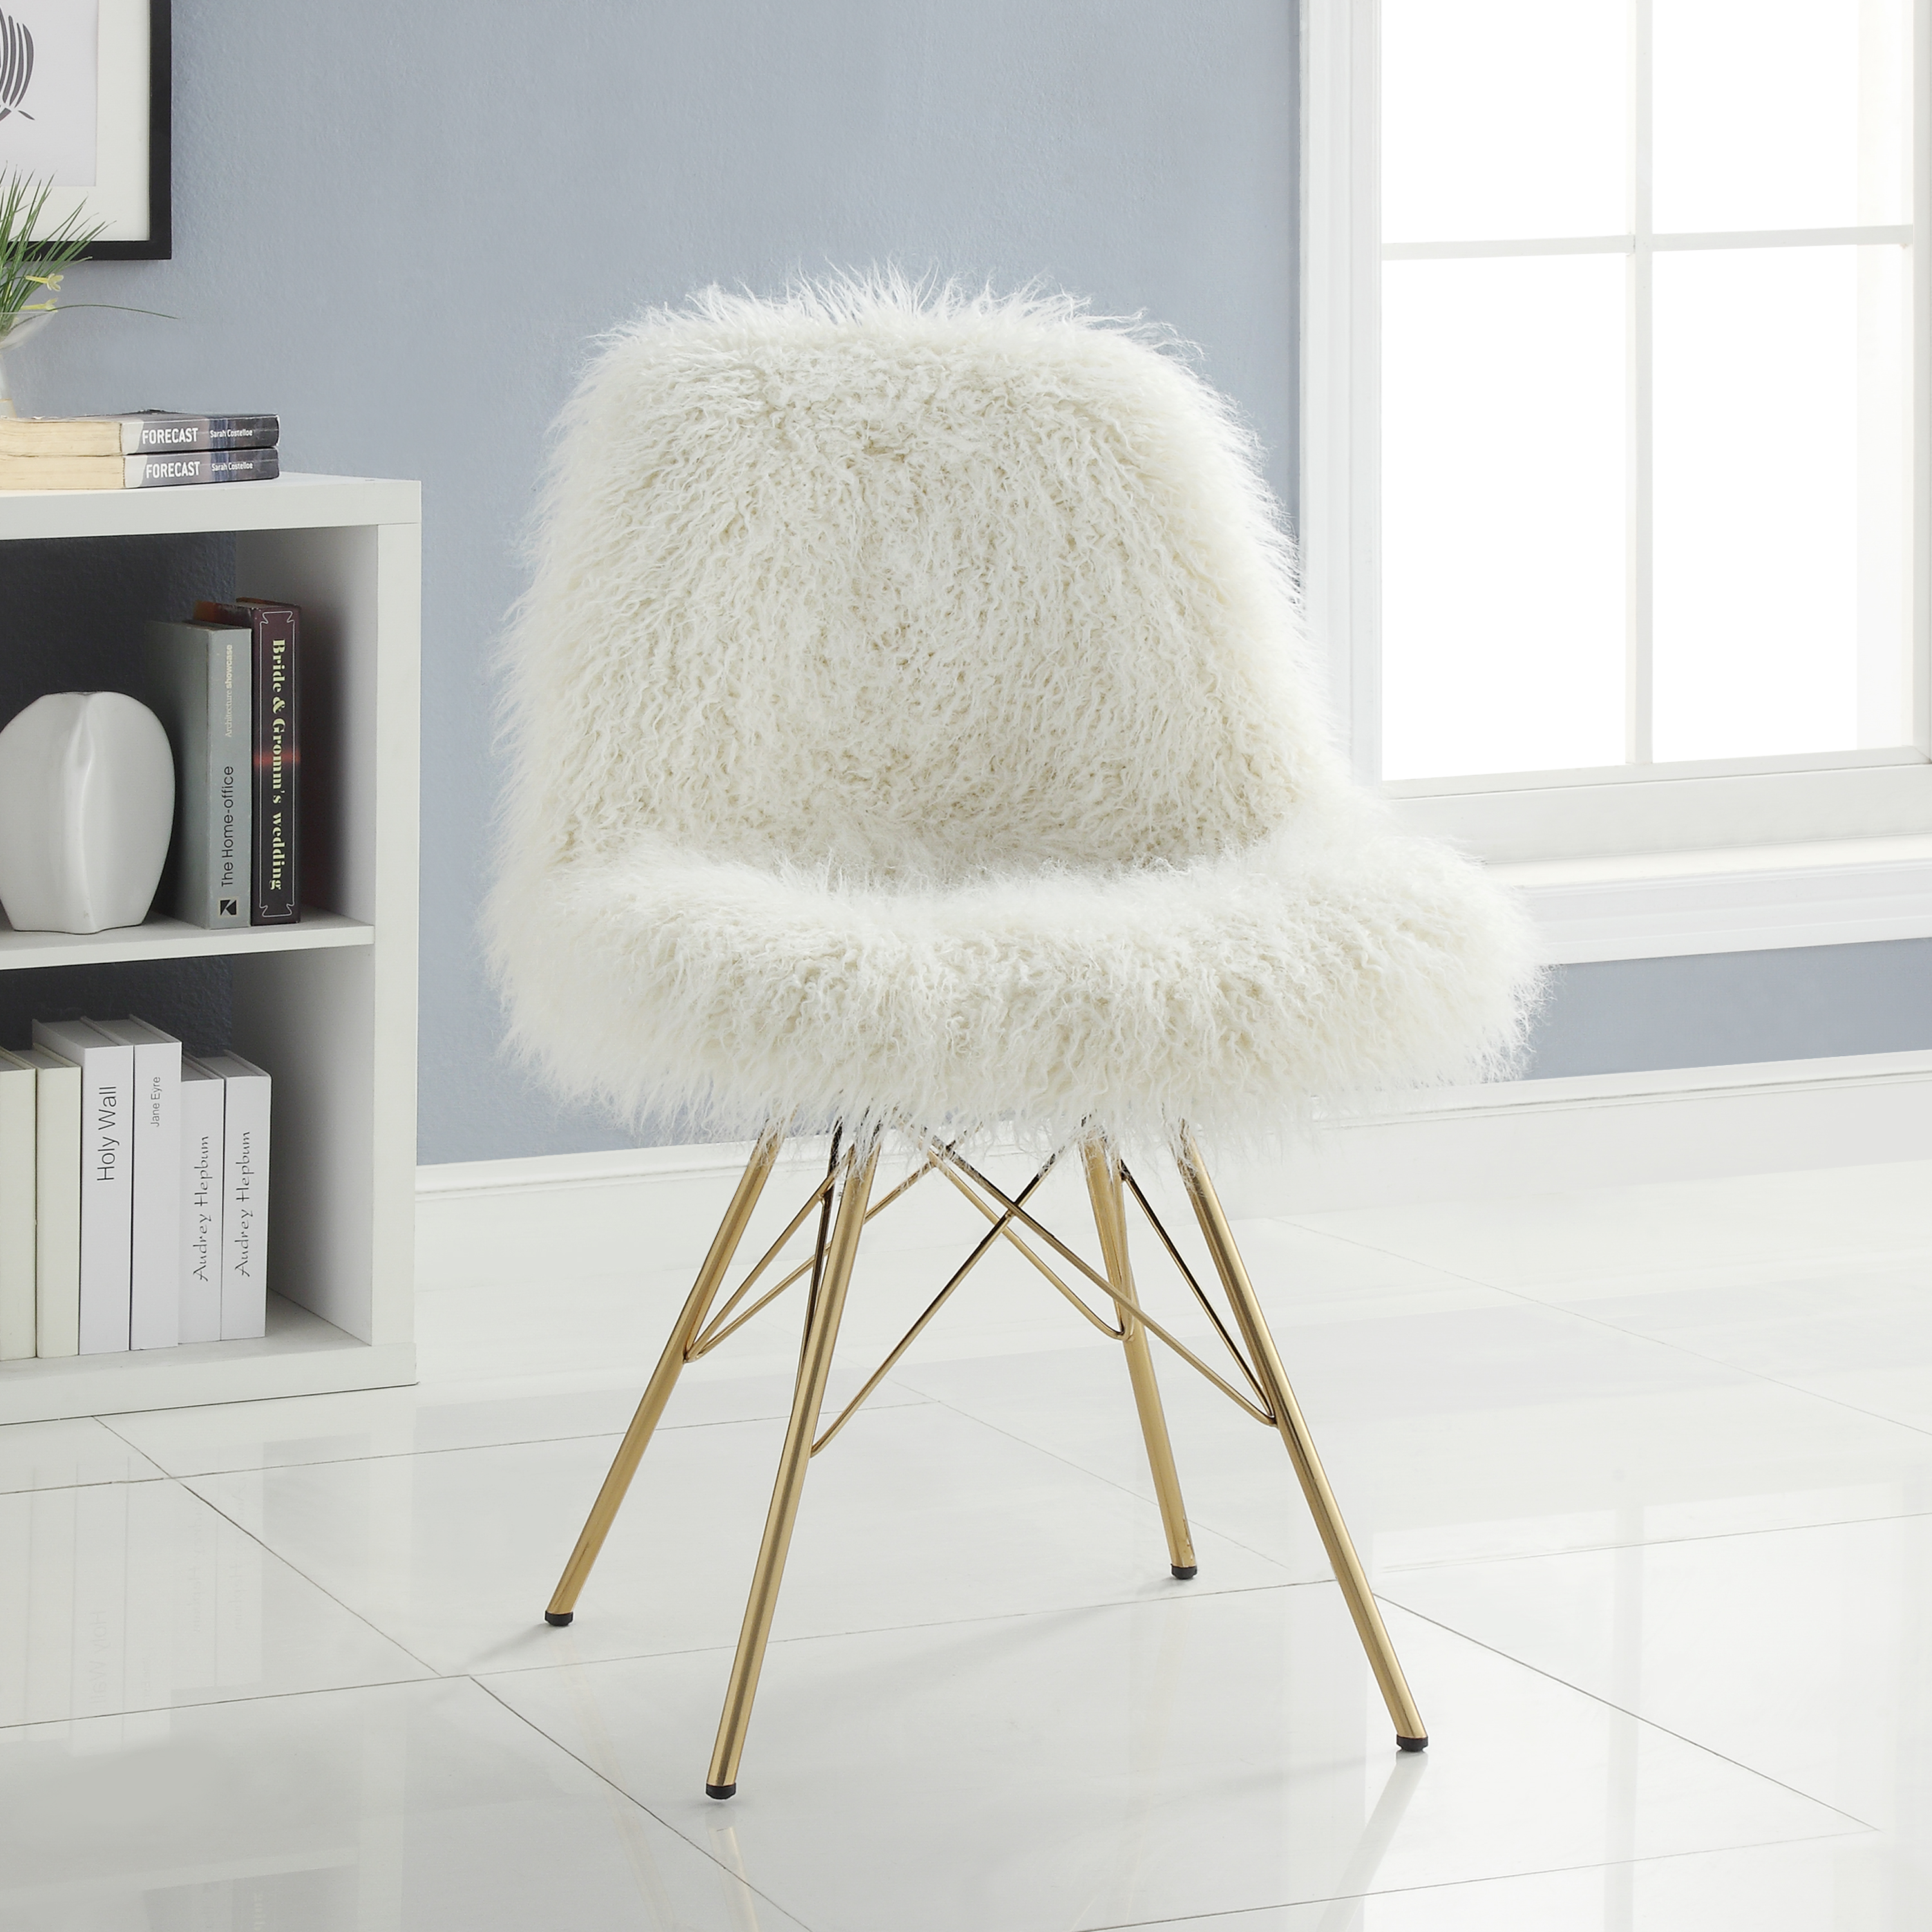 chairs for a bedroom chair two person seating kmart linon remy flokati with gold metal base